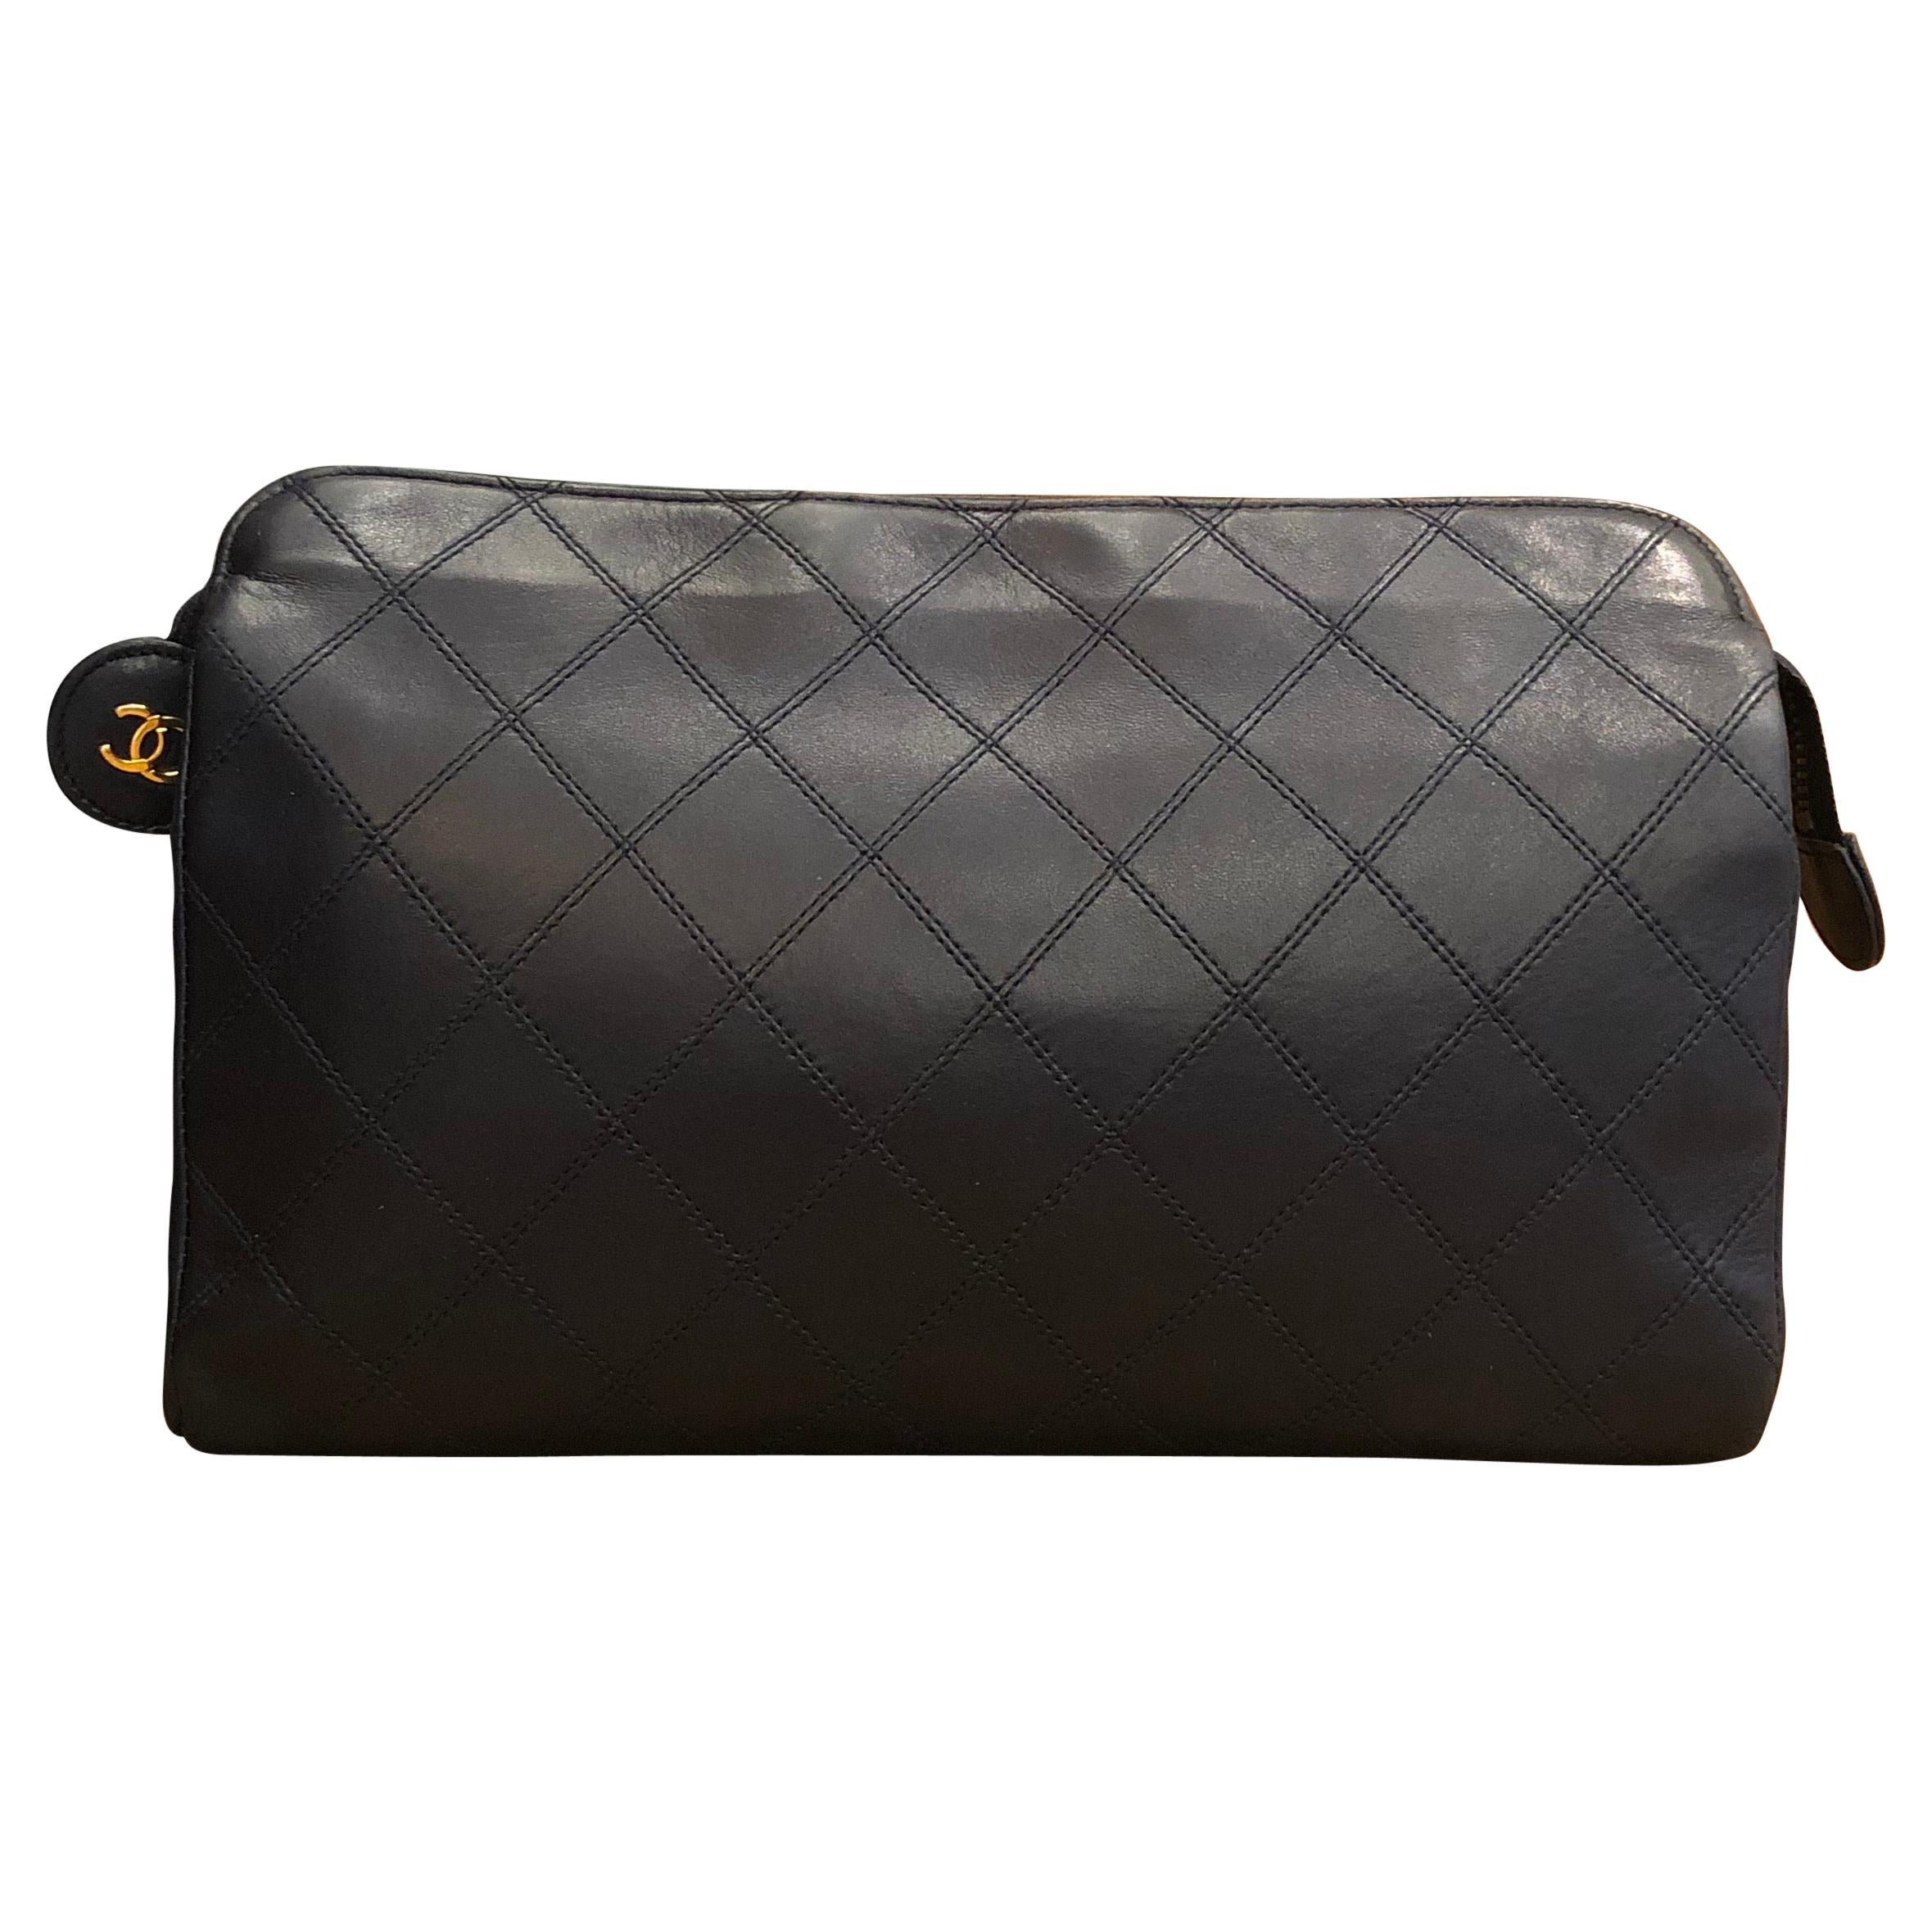 CHANEL Navy Quilted Lambskin Leather Clutch Bag